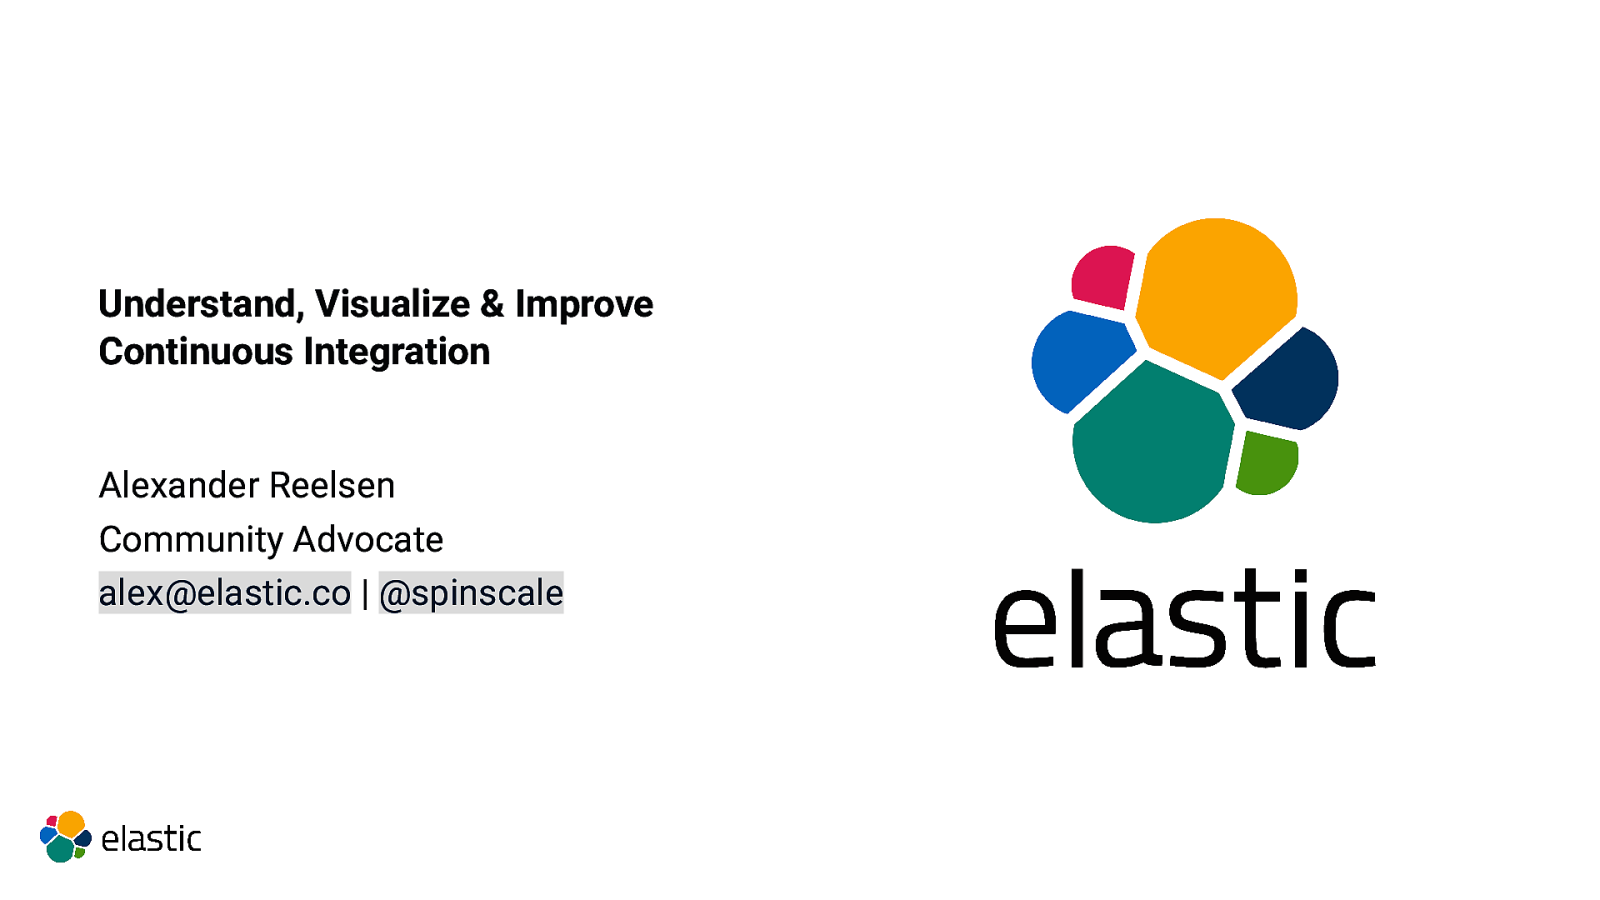 Understand, Visualize & Improve Continuous Integration using the Elastic Stack